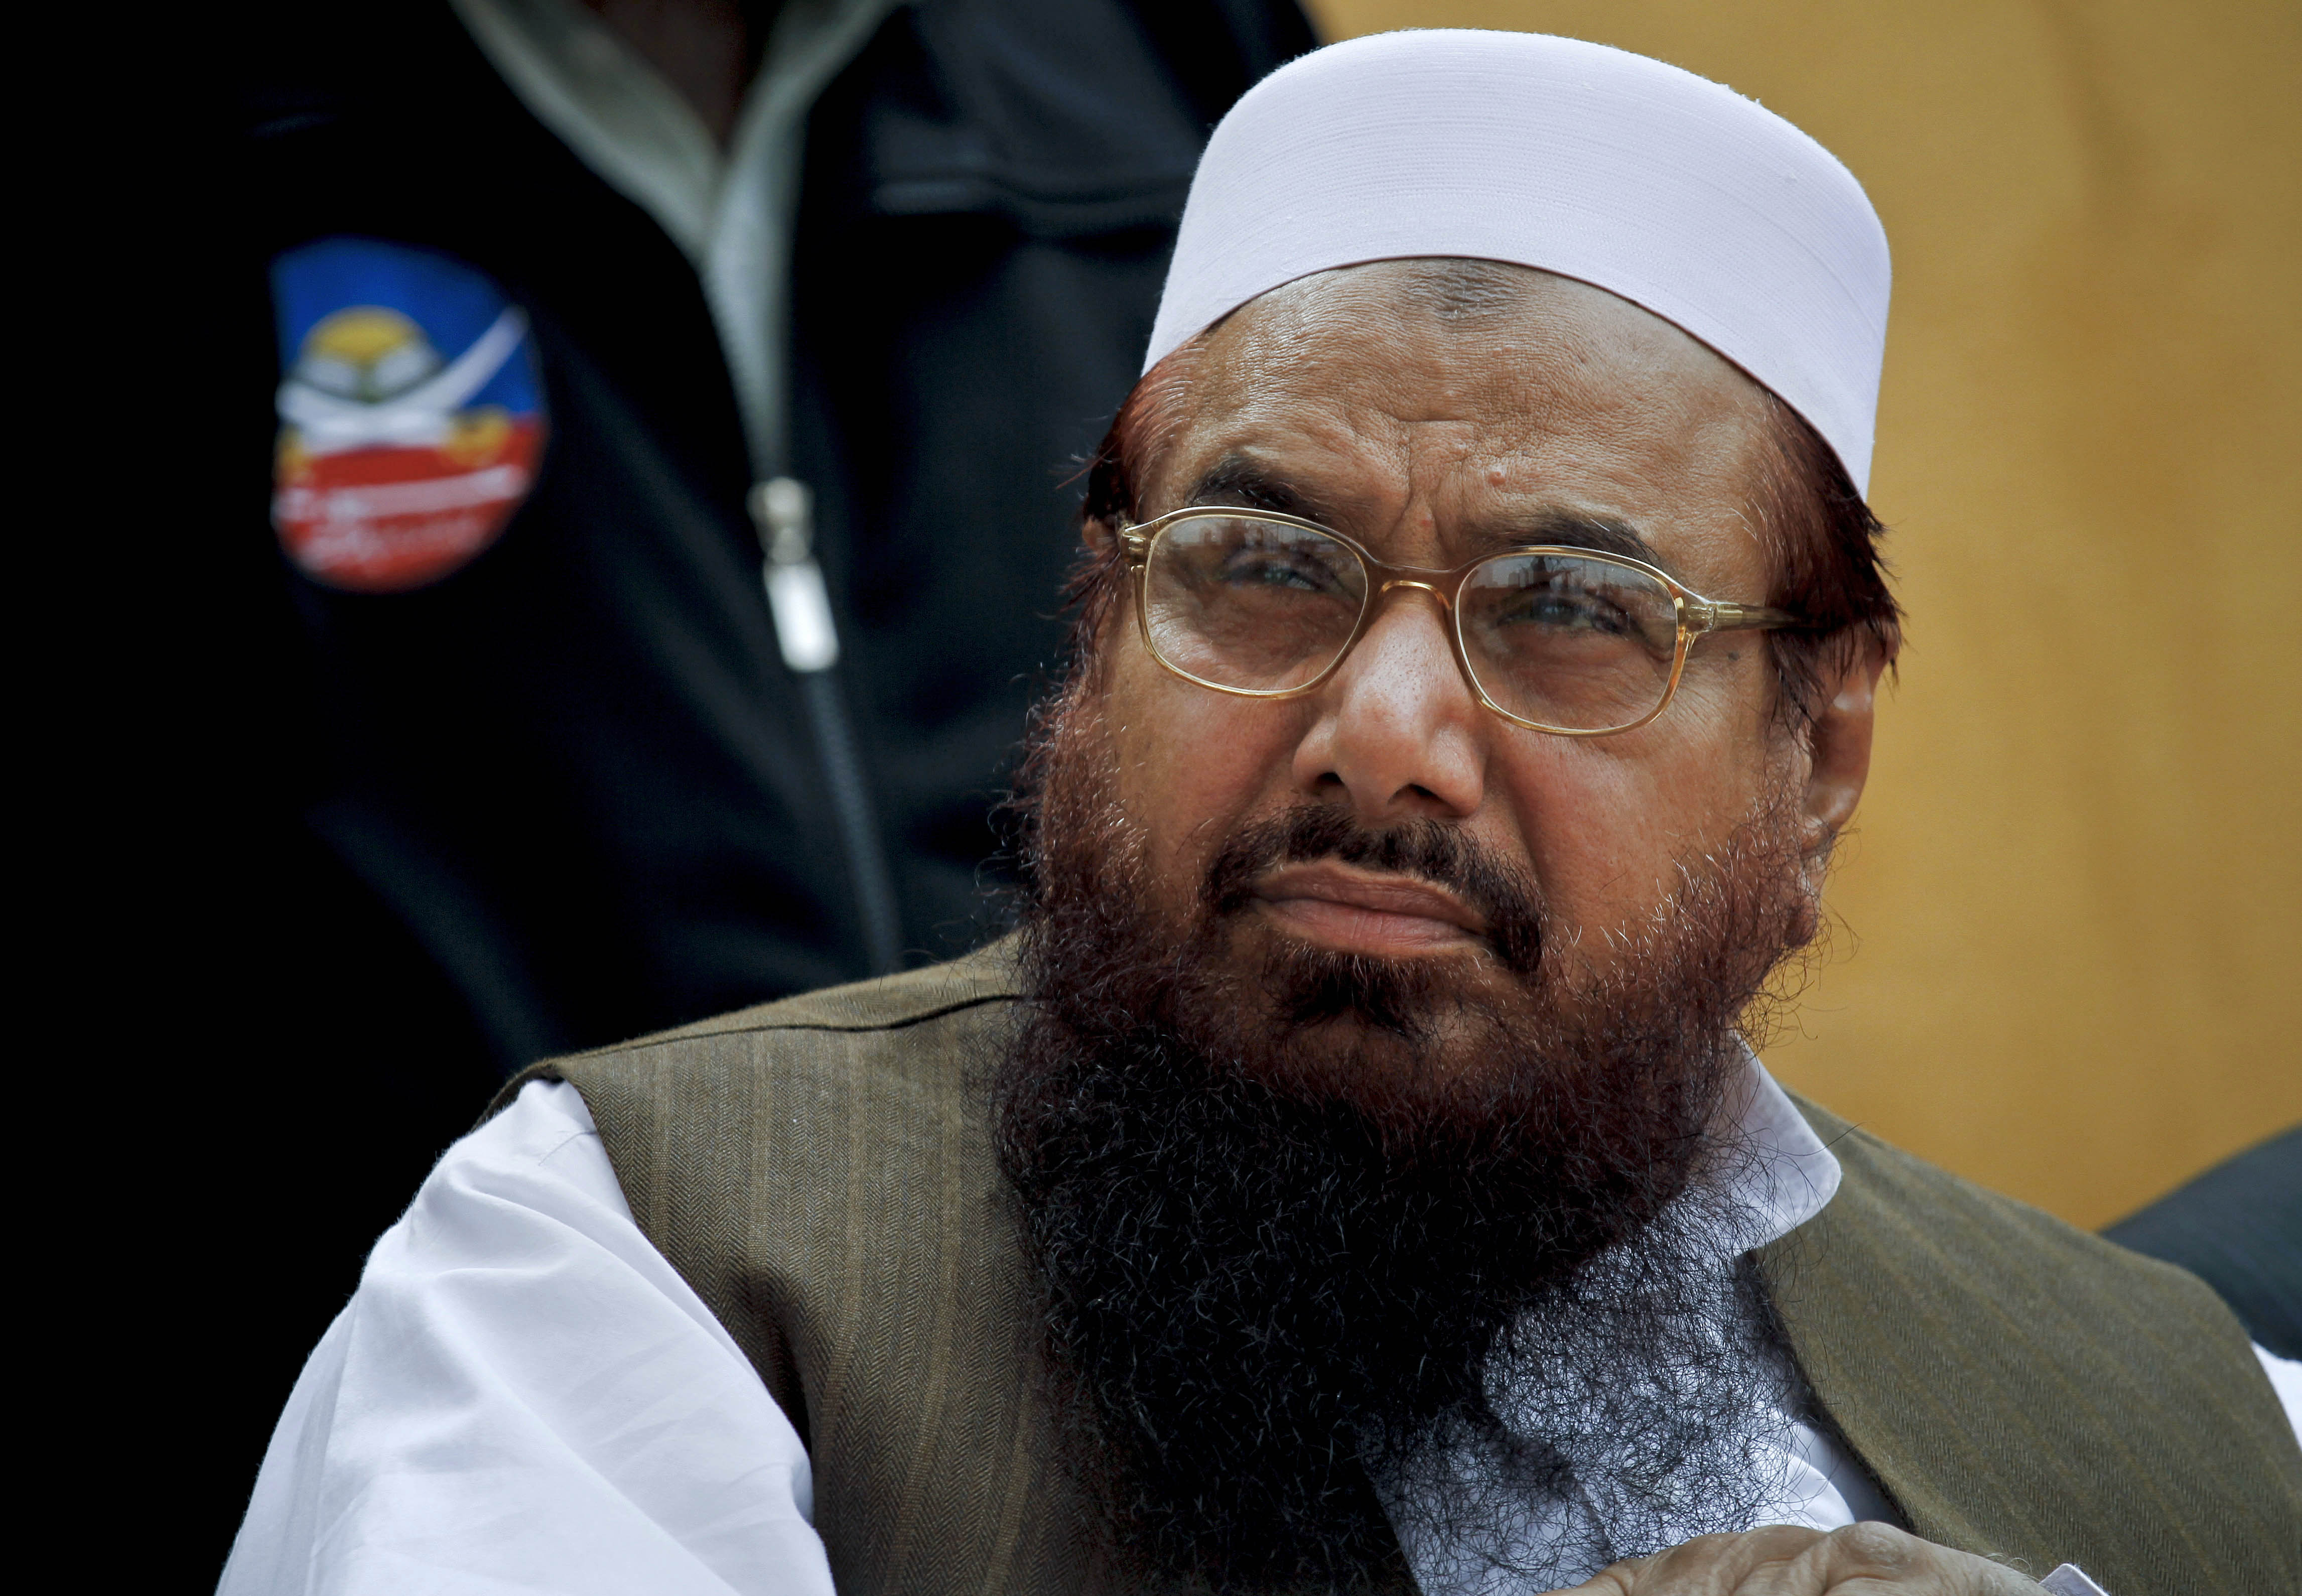 <b>$10 million: Hafiz Saeed</b>                                   Hafiz Saeed is the amir of Jama'at-ud-Da'wah, a terrorist organization operating out of Pakistan, and founder of Lashkar-e-Taiba, the organization responsible for the 2008 attacks in Mumbai that lasted four days and resulted in 174 casualties. Saeed resides in Lahore, Pakistan.